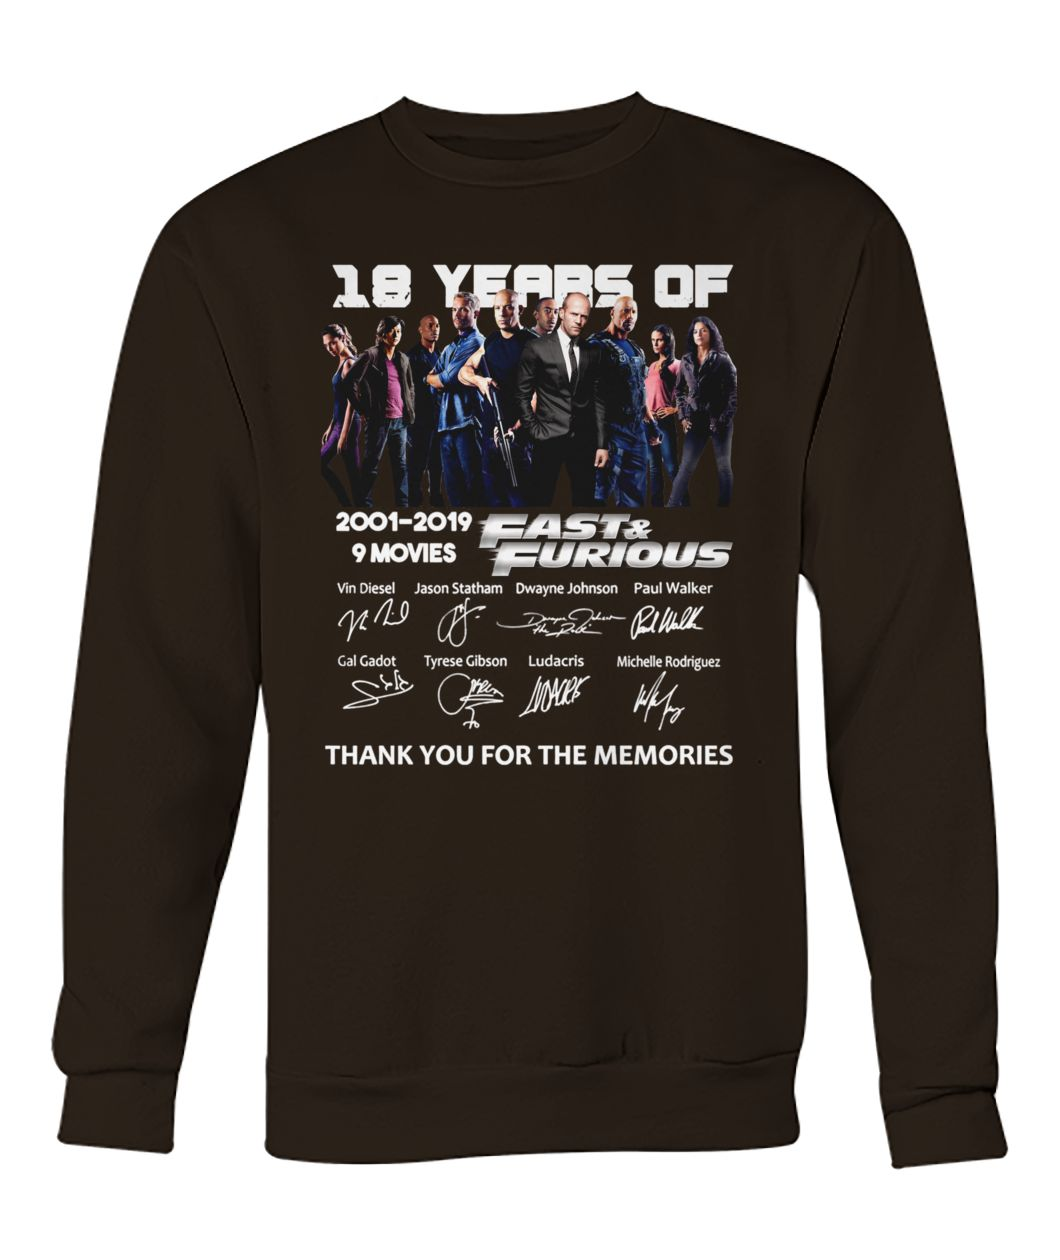 18 years of fast and furious 2001-2019 9 movies signatures thank you for the memories crew neck sweatshirt